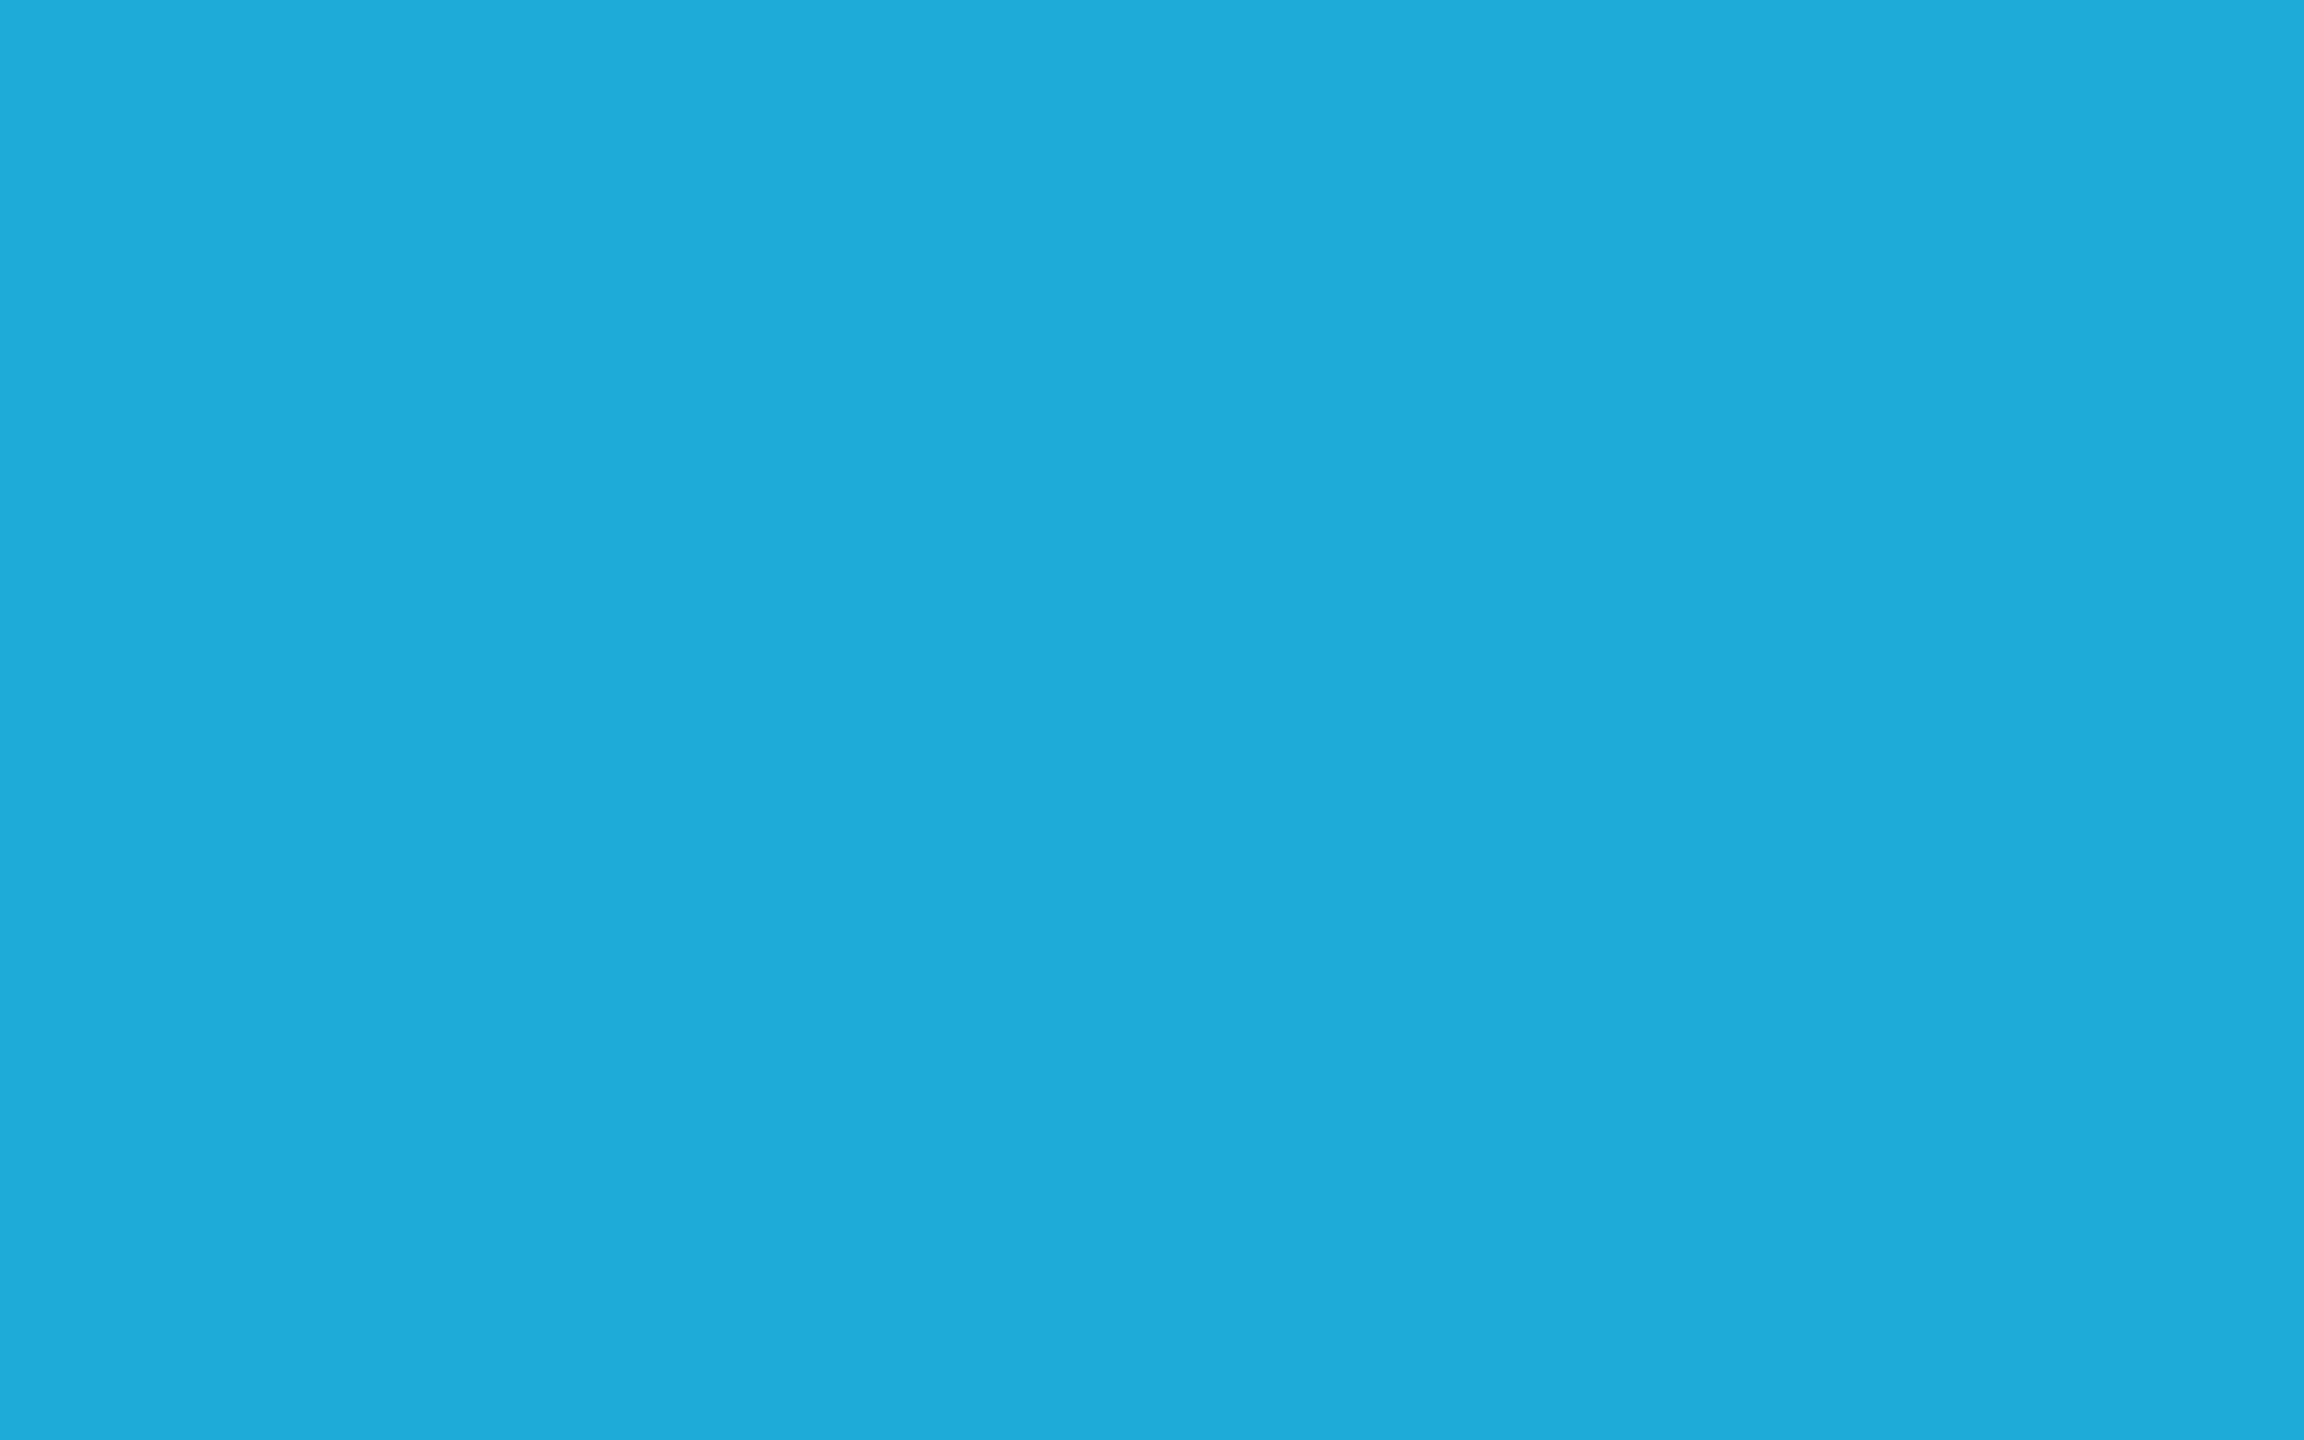 2304x1440 Bright Cerulean Solid Color Background